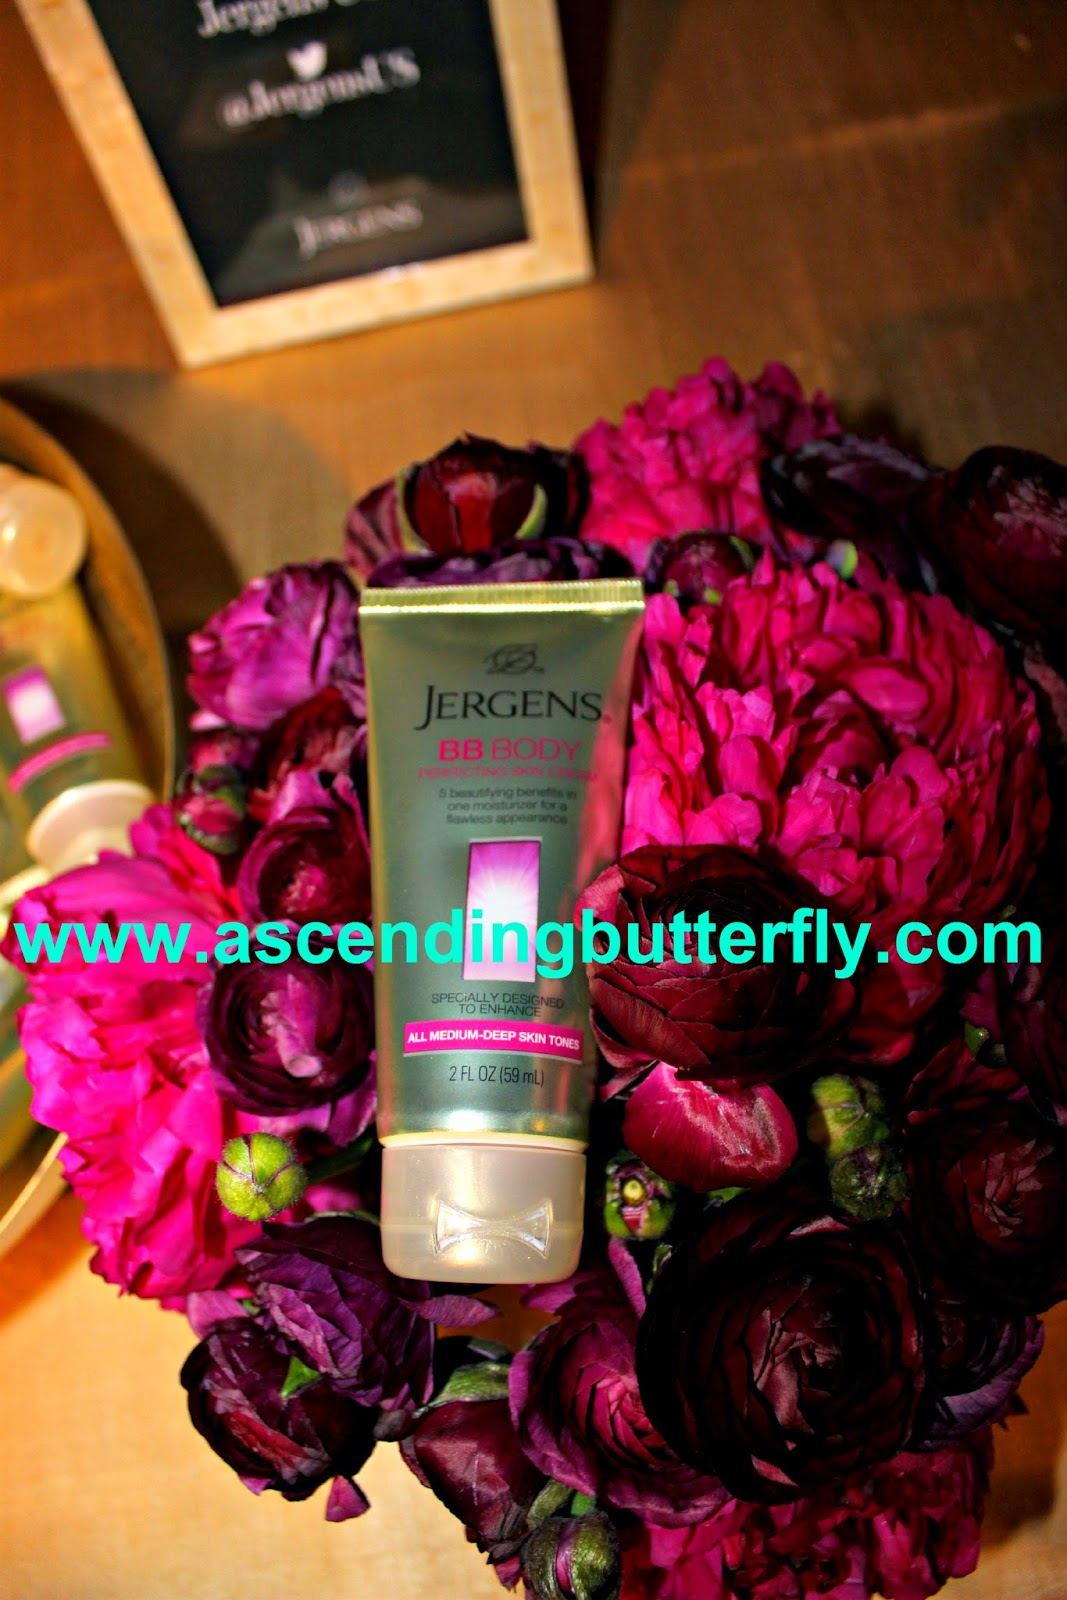 Celebrate the Season InStyle Jergens BB Body Cream #BBgoesBody #CelebrateInStyle, BB Cream, Lotion